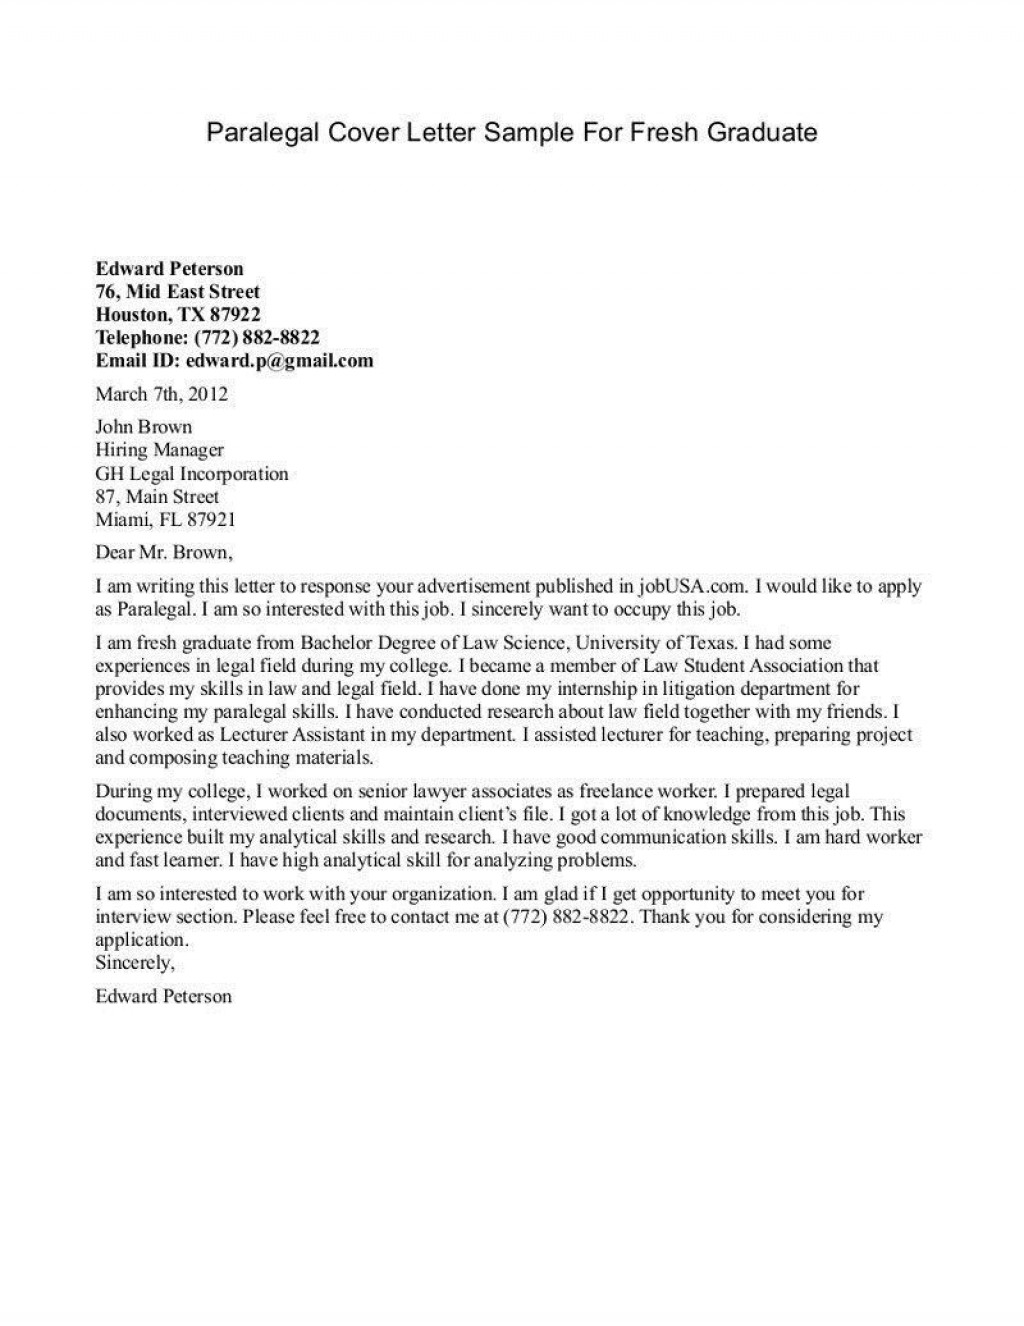 004 Magnificent Cover Letter Sample Template For Fresh Graduate In Marketing Highest Quality Large